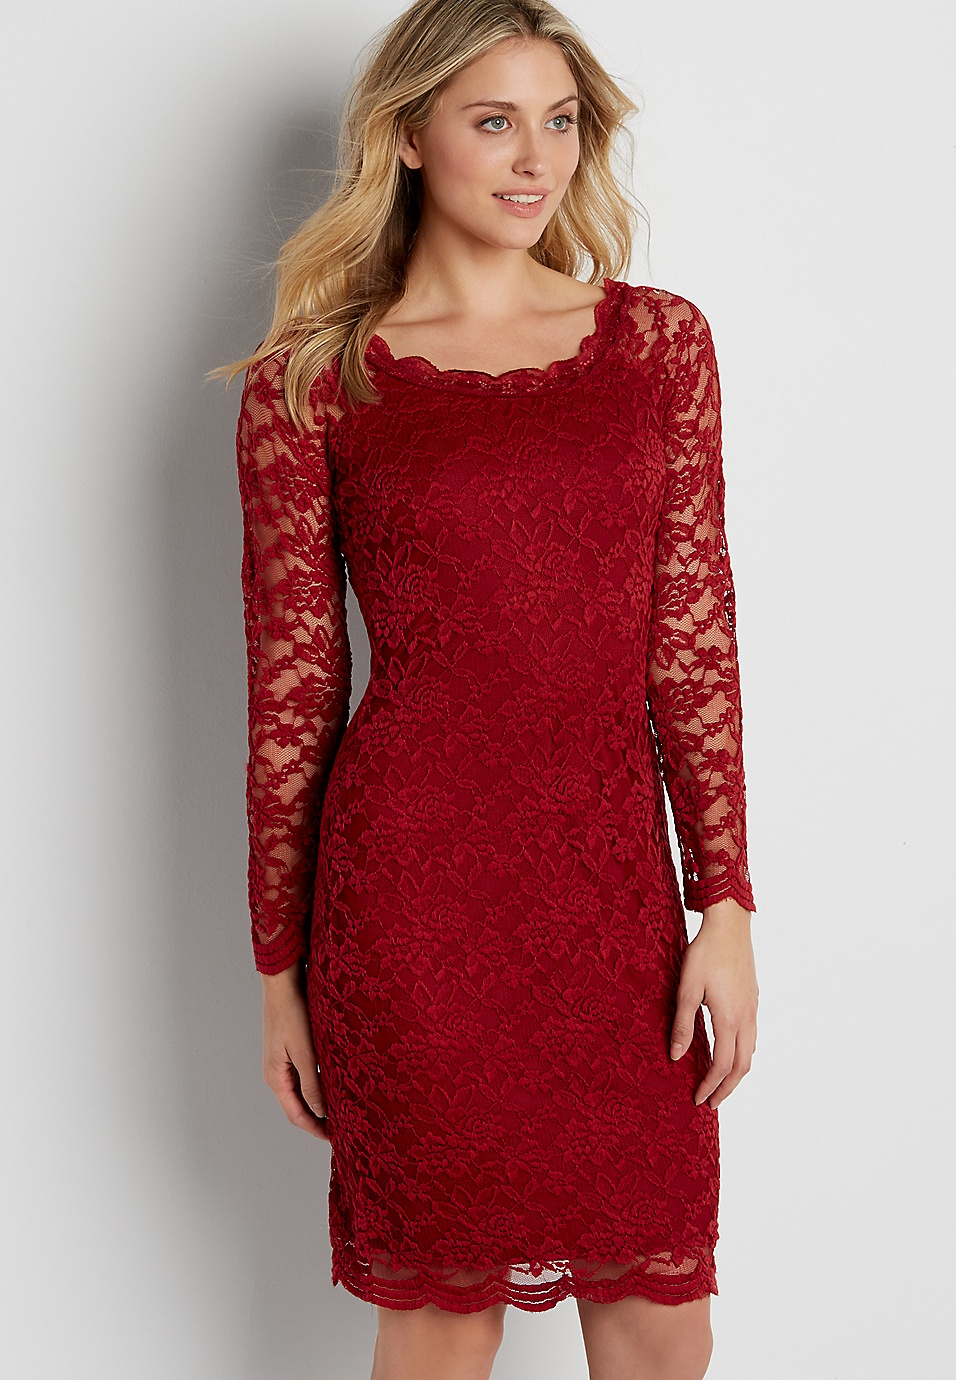 74f5b60e57 floral lace dress with scalloped hems in red